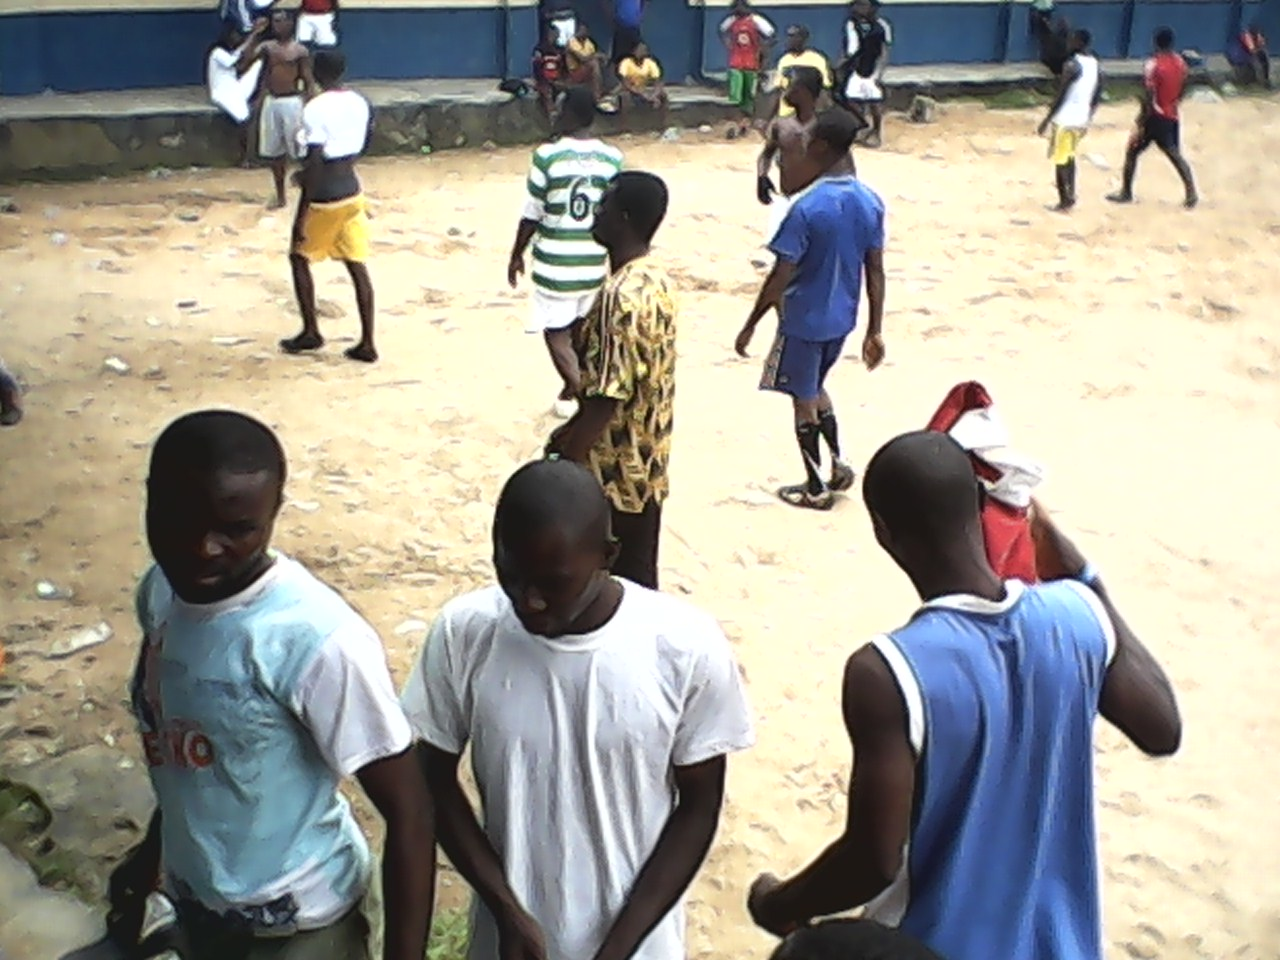 The boys leaving the football field after there were dispersed by the police and PDP agents